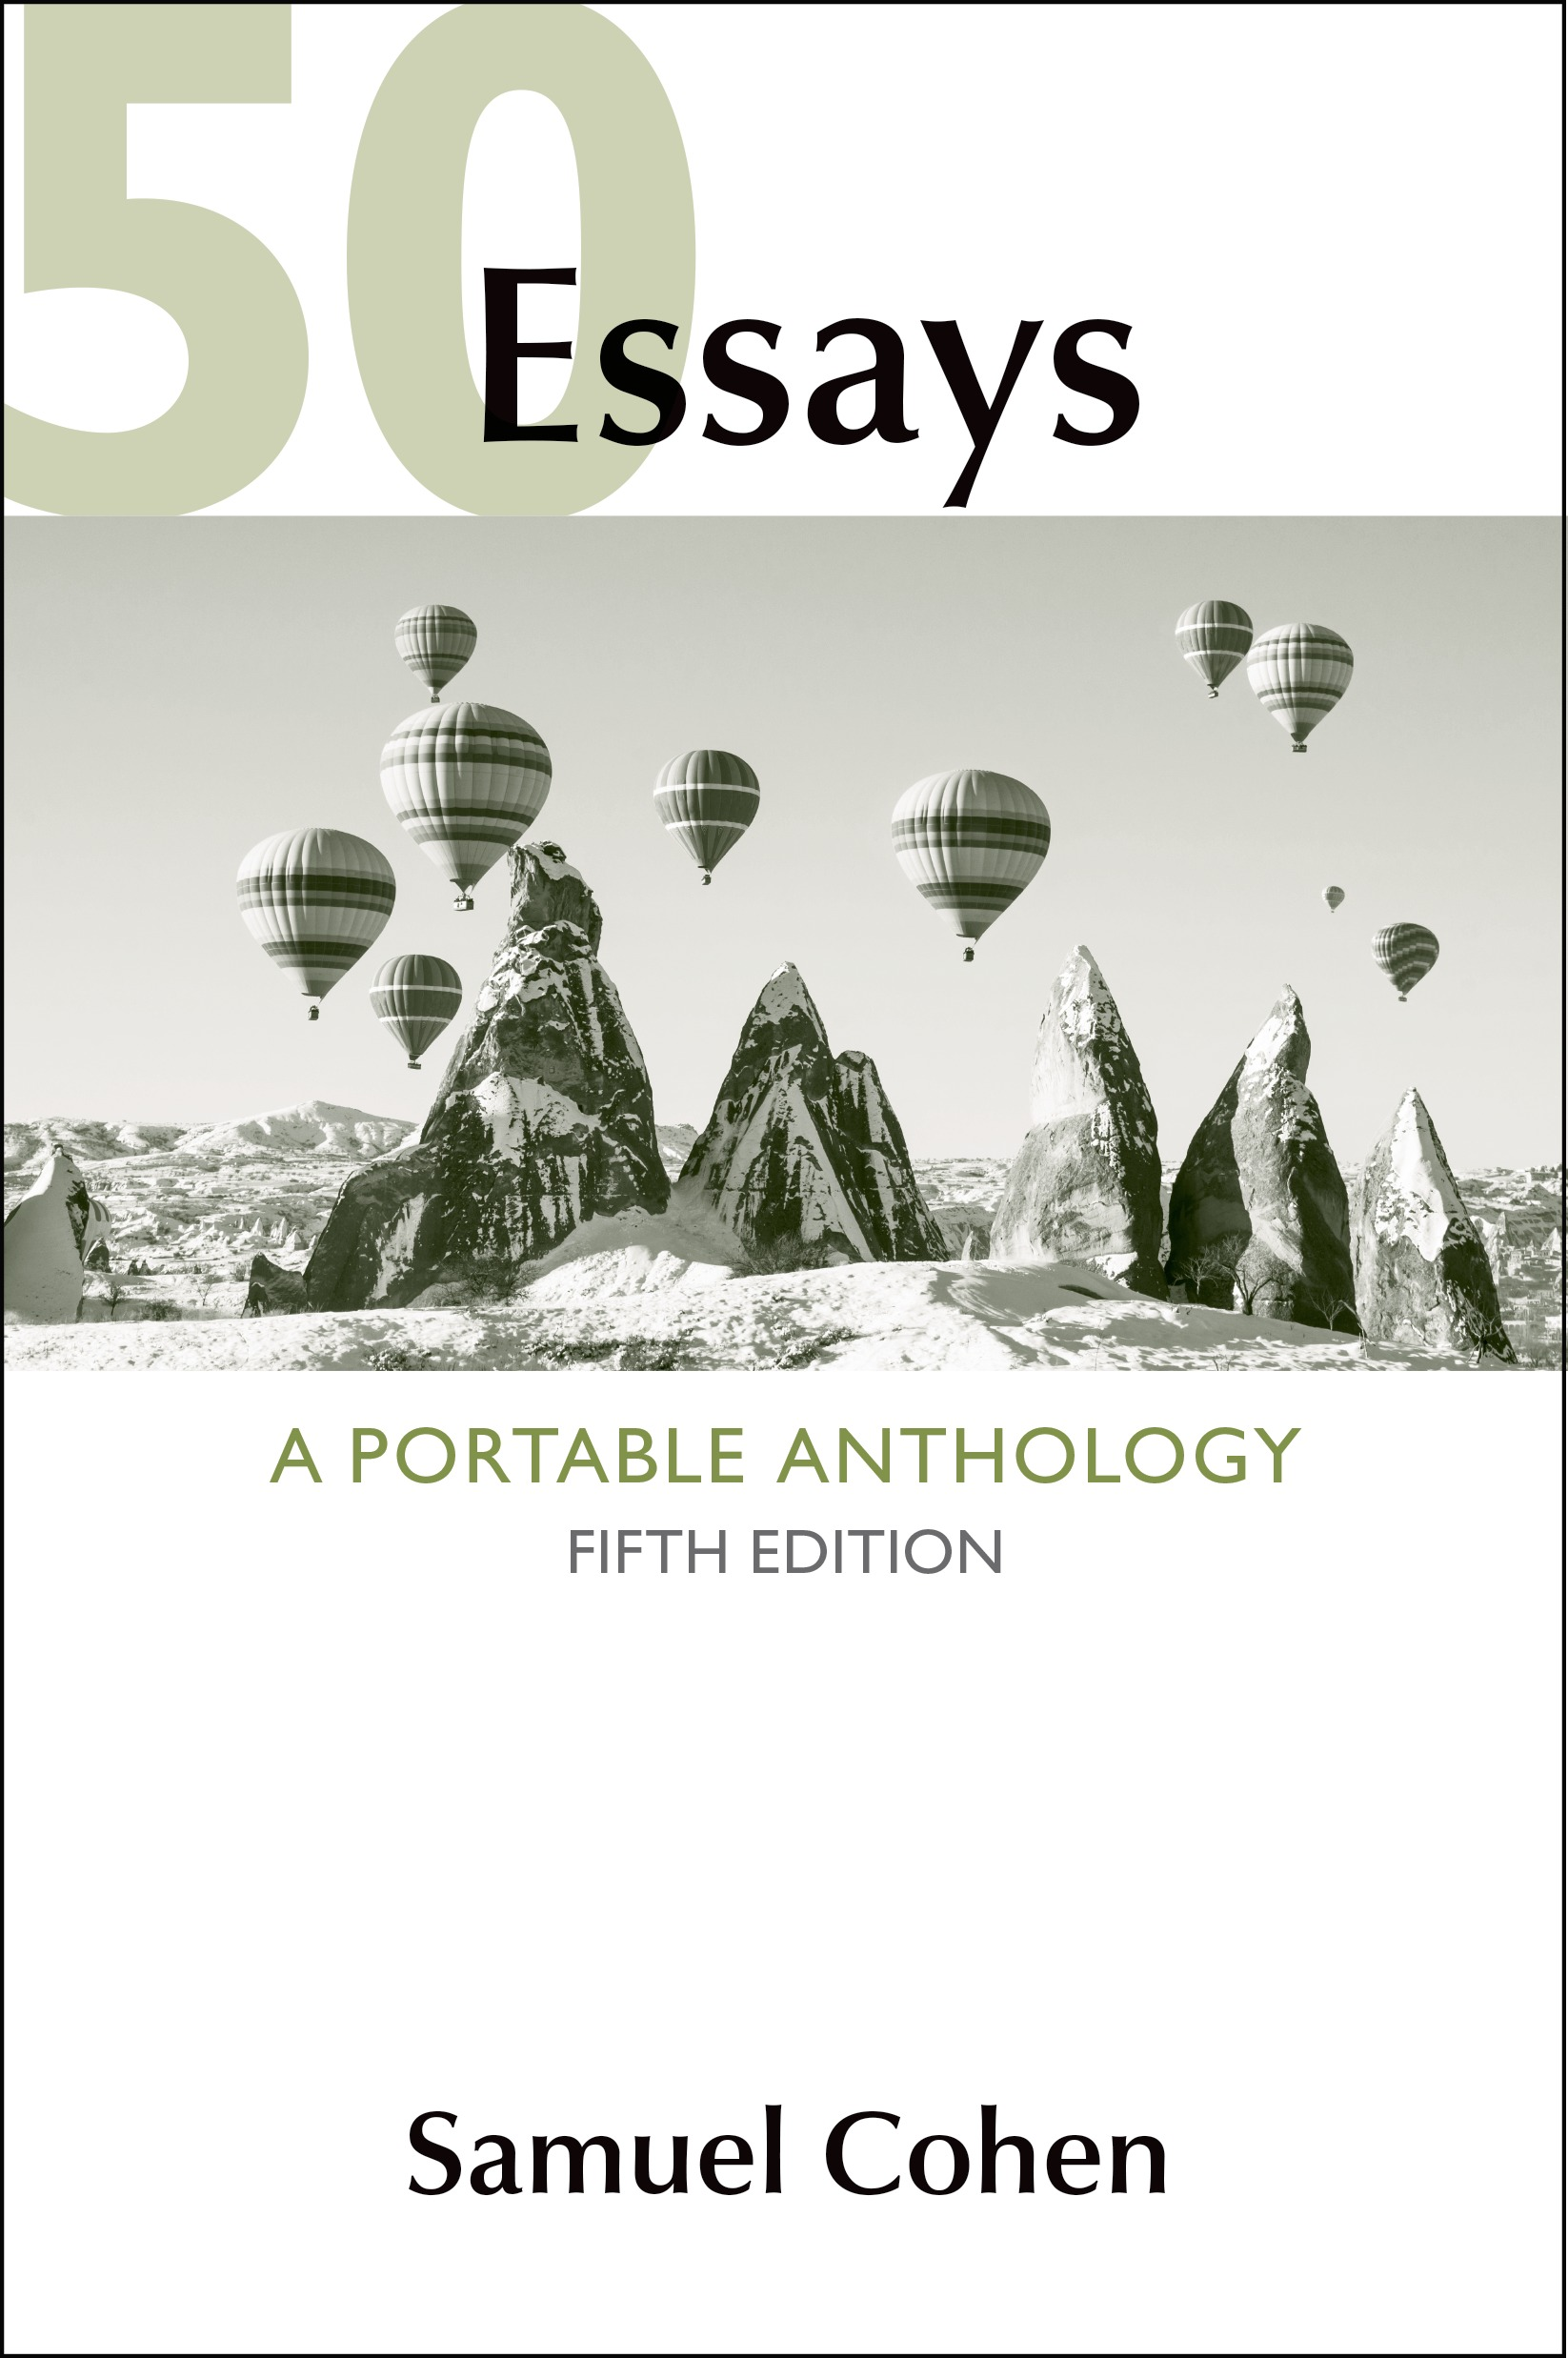 008 Essays Table Of Contents Essay Example Best 50 Great A Portable Anthology 4th Edition Full